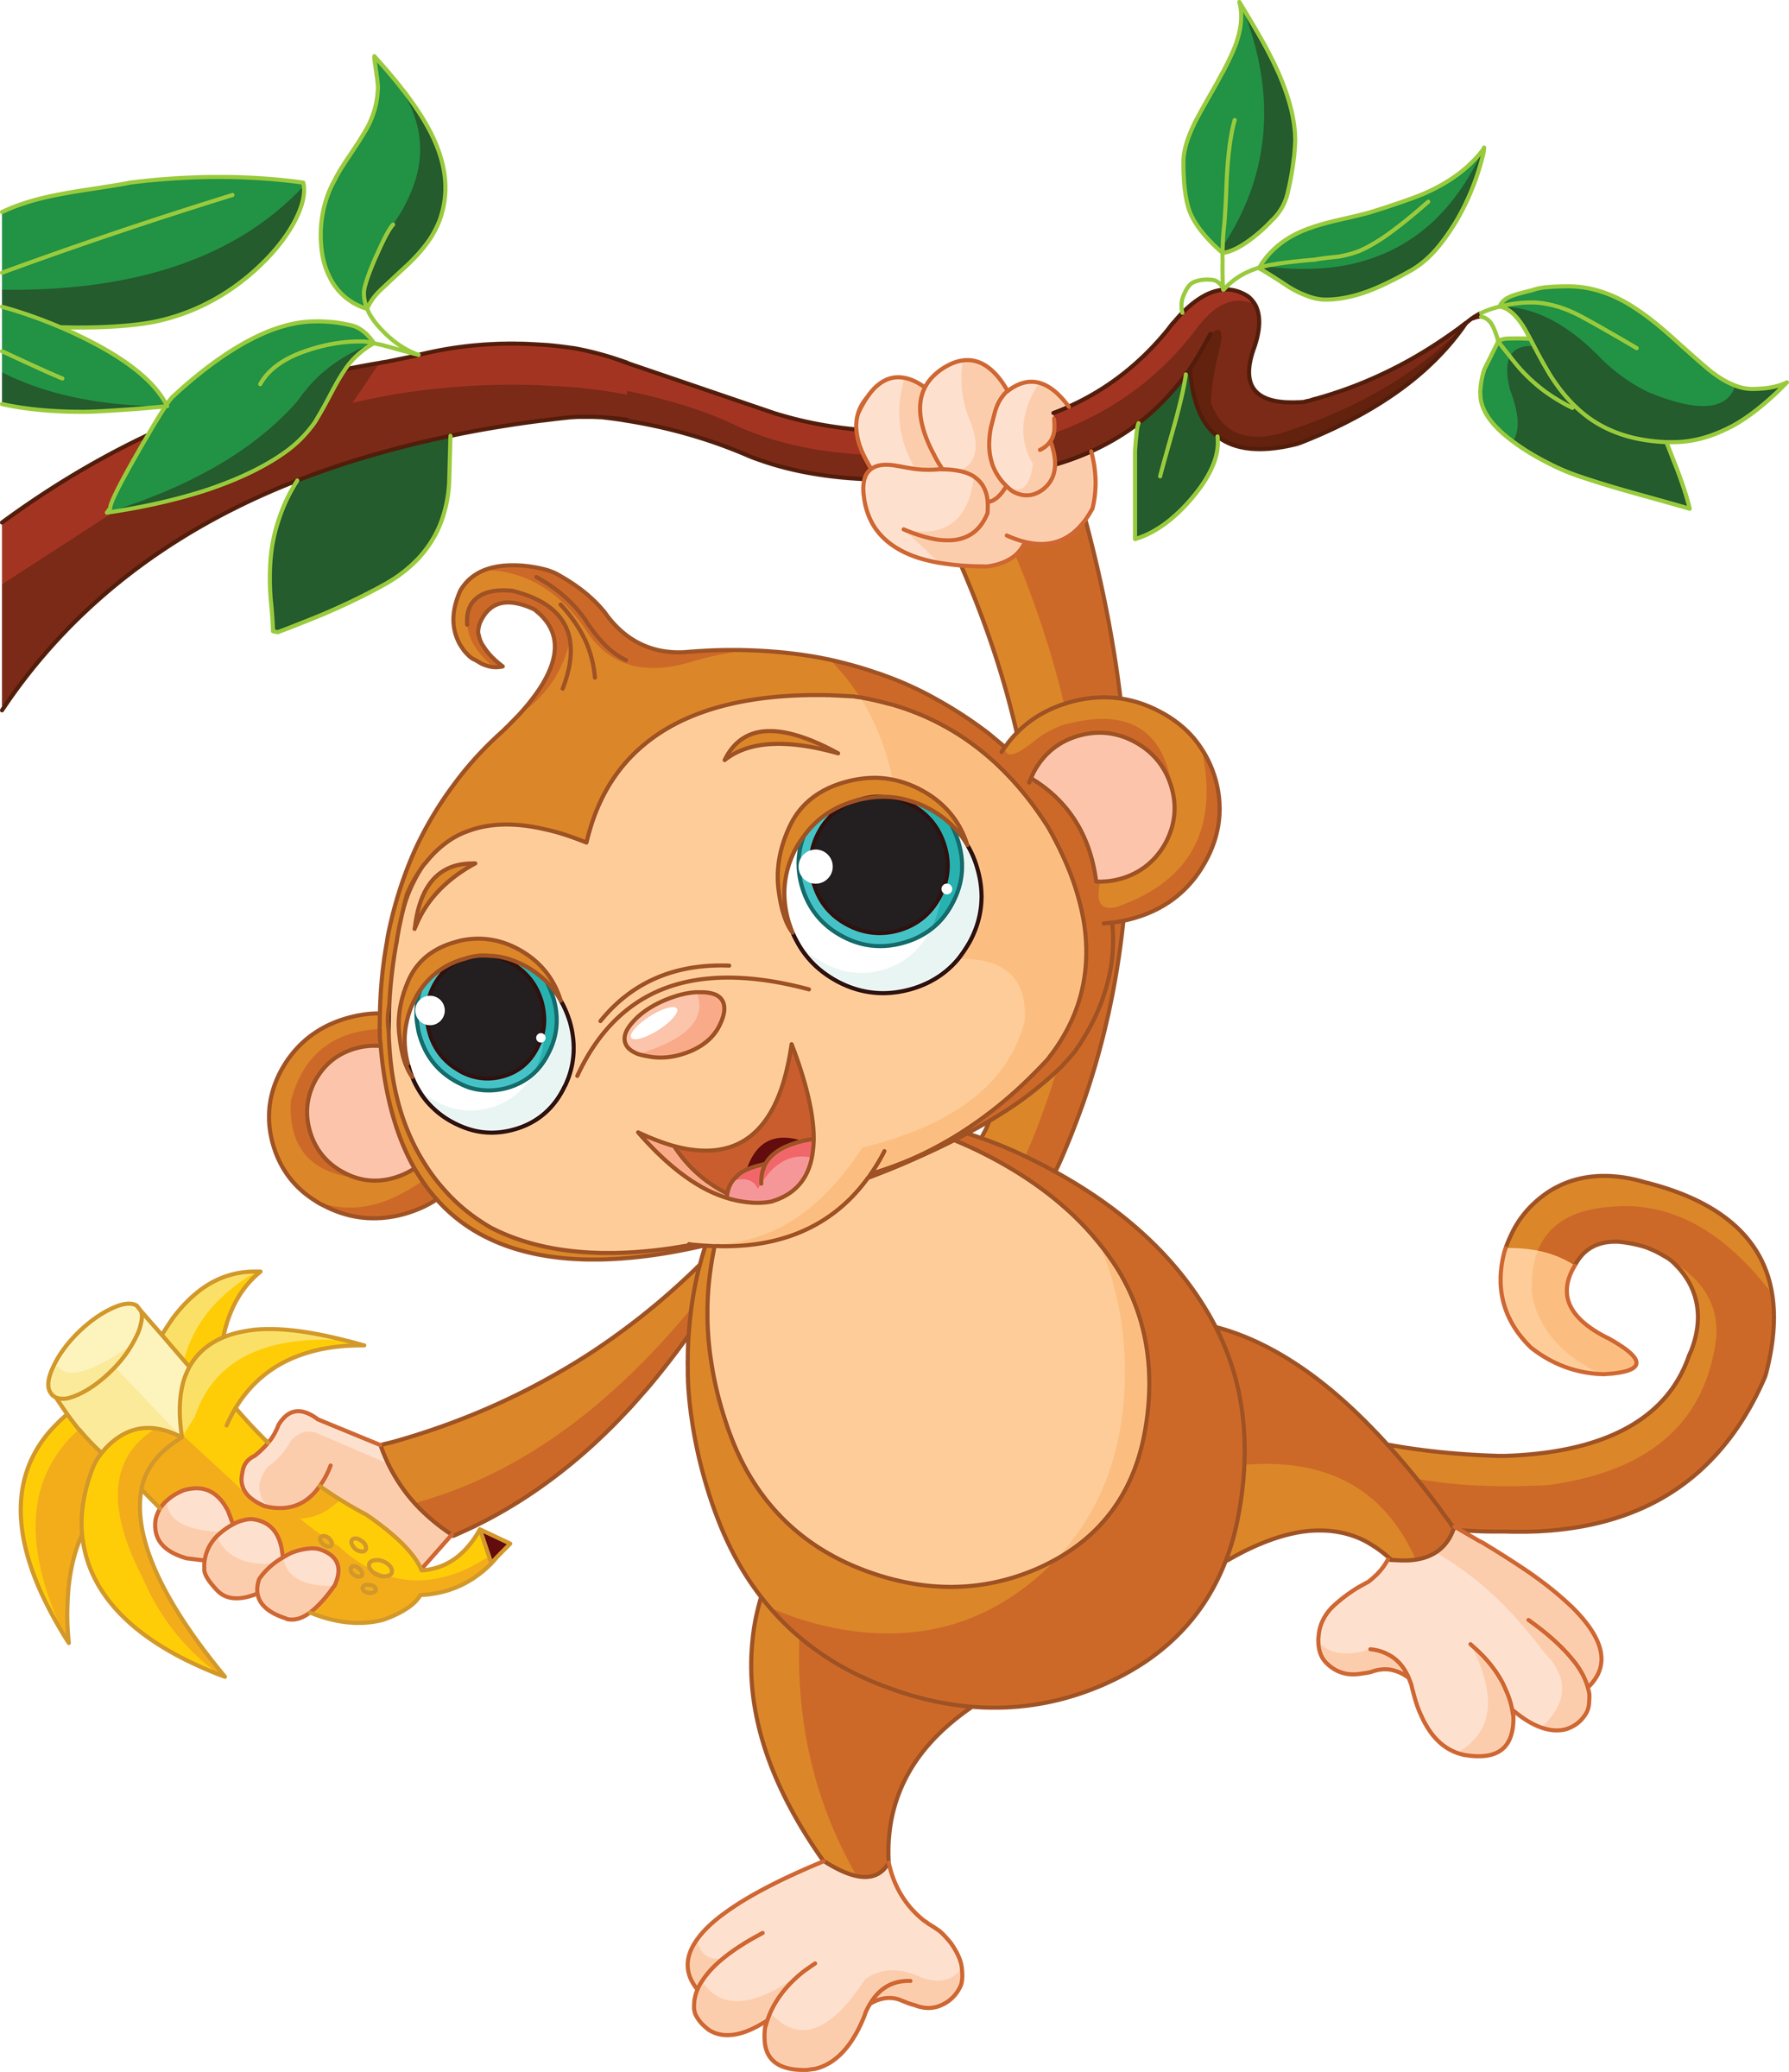 Animated baby monkey clipart png royalty free library Baby Monkeys Clip art - monkey png download - 2072*2400 - Free ... png royalty free library